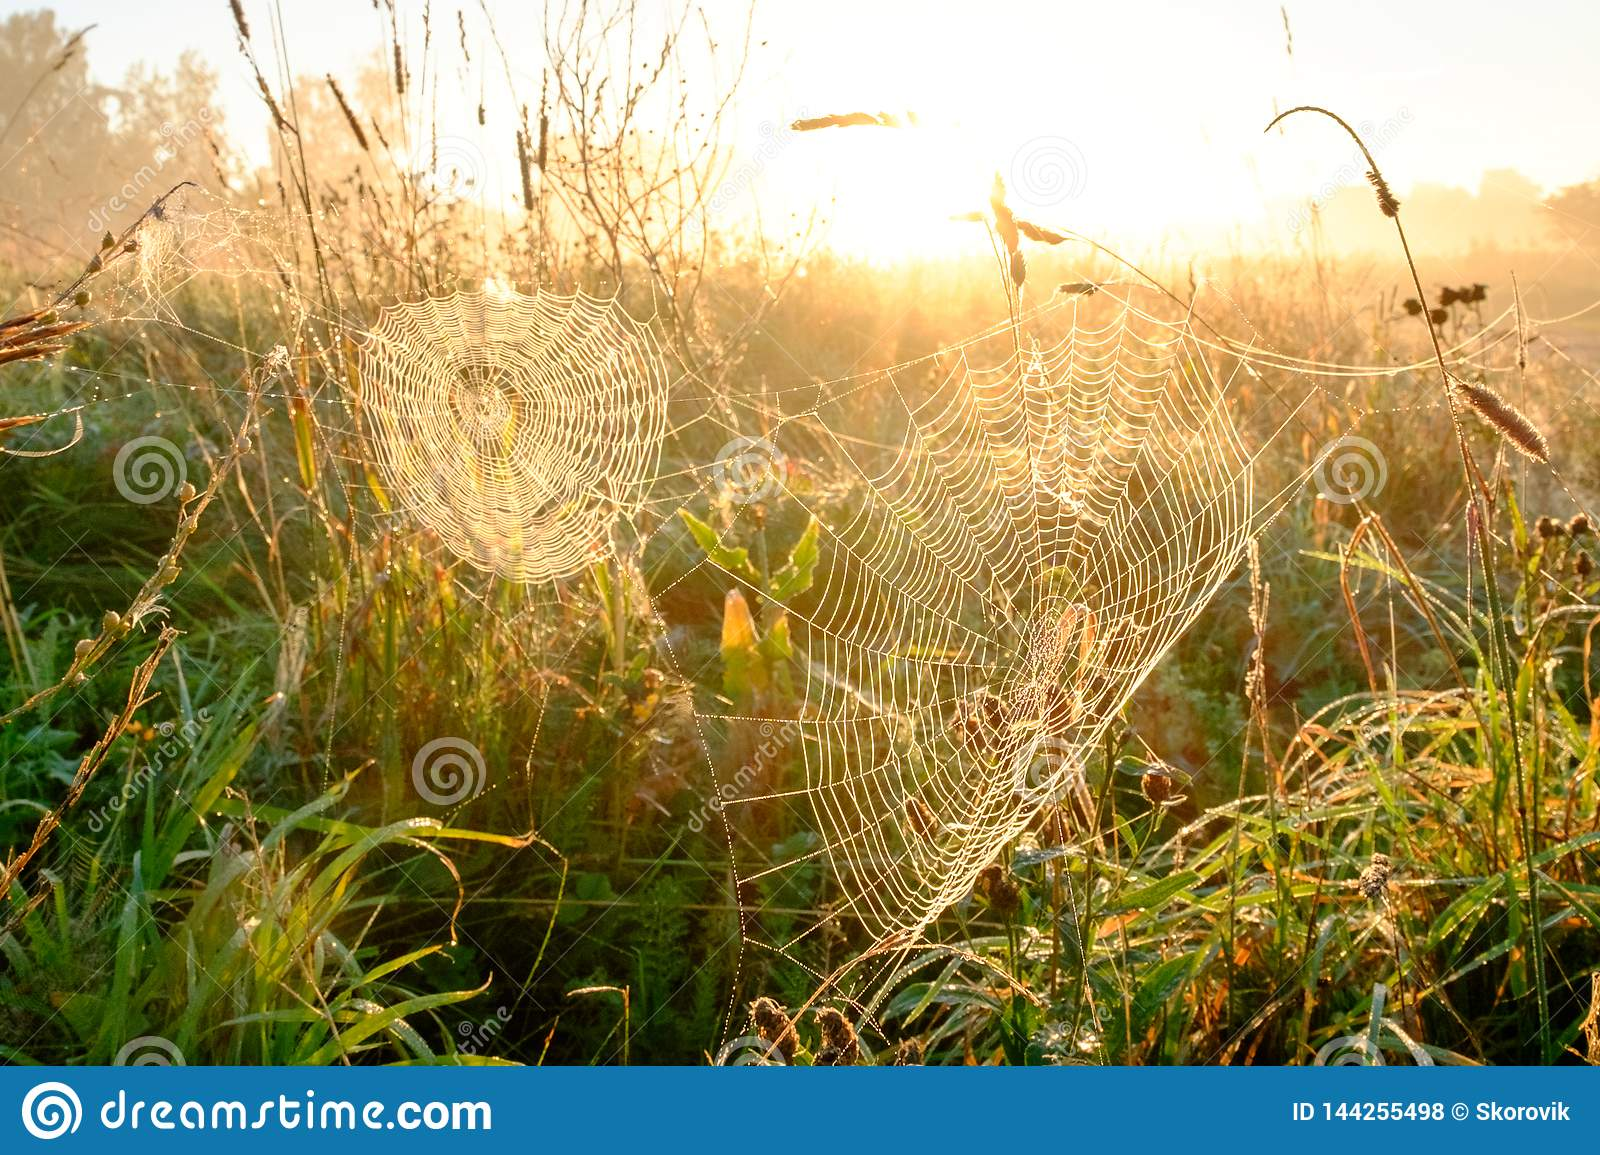 Spider`s web closeup with drops of dew at dawn. Wet grass before sun raise. Spider web with droplets of water. Natural